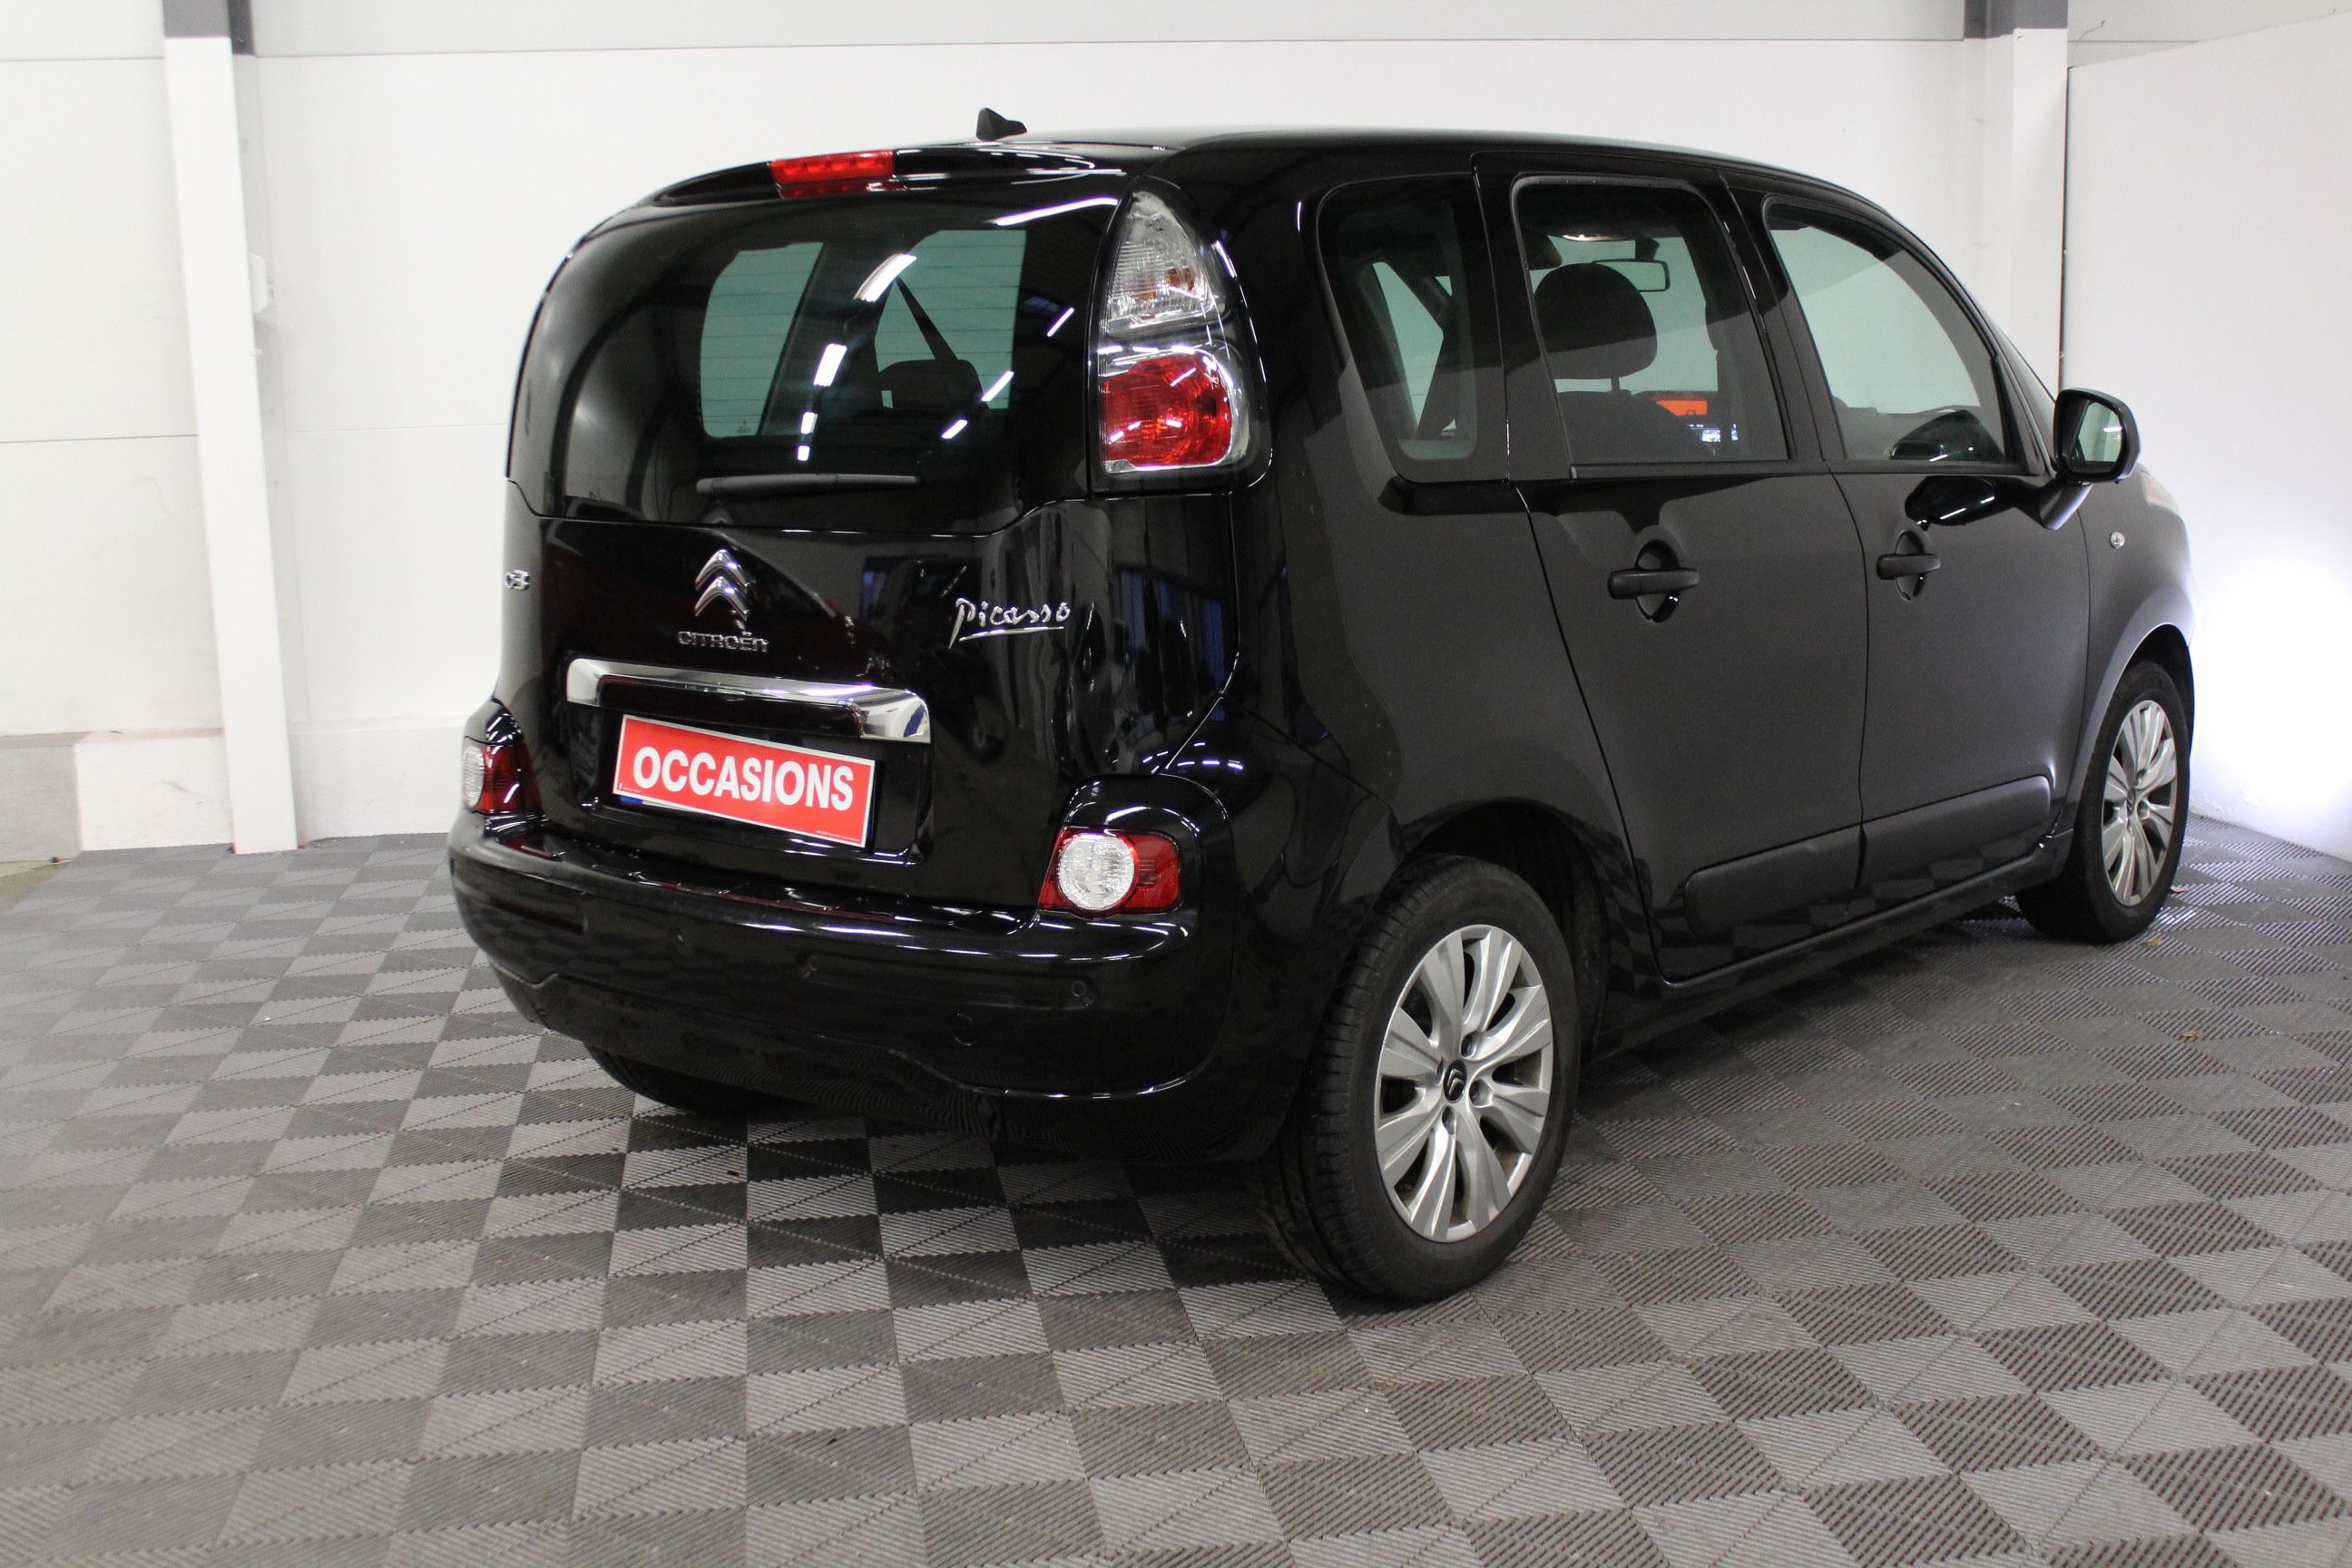 CITROEN C3 PICASSO 2016 à 9900 € - Photo n°4